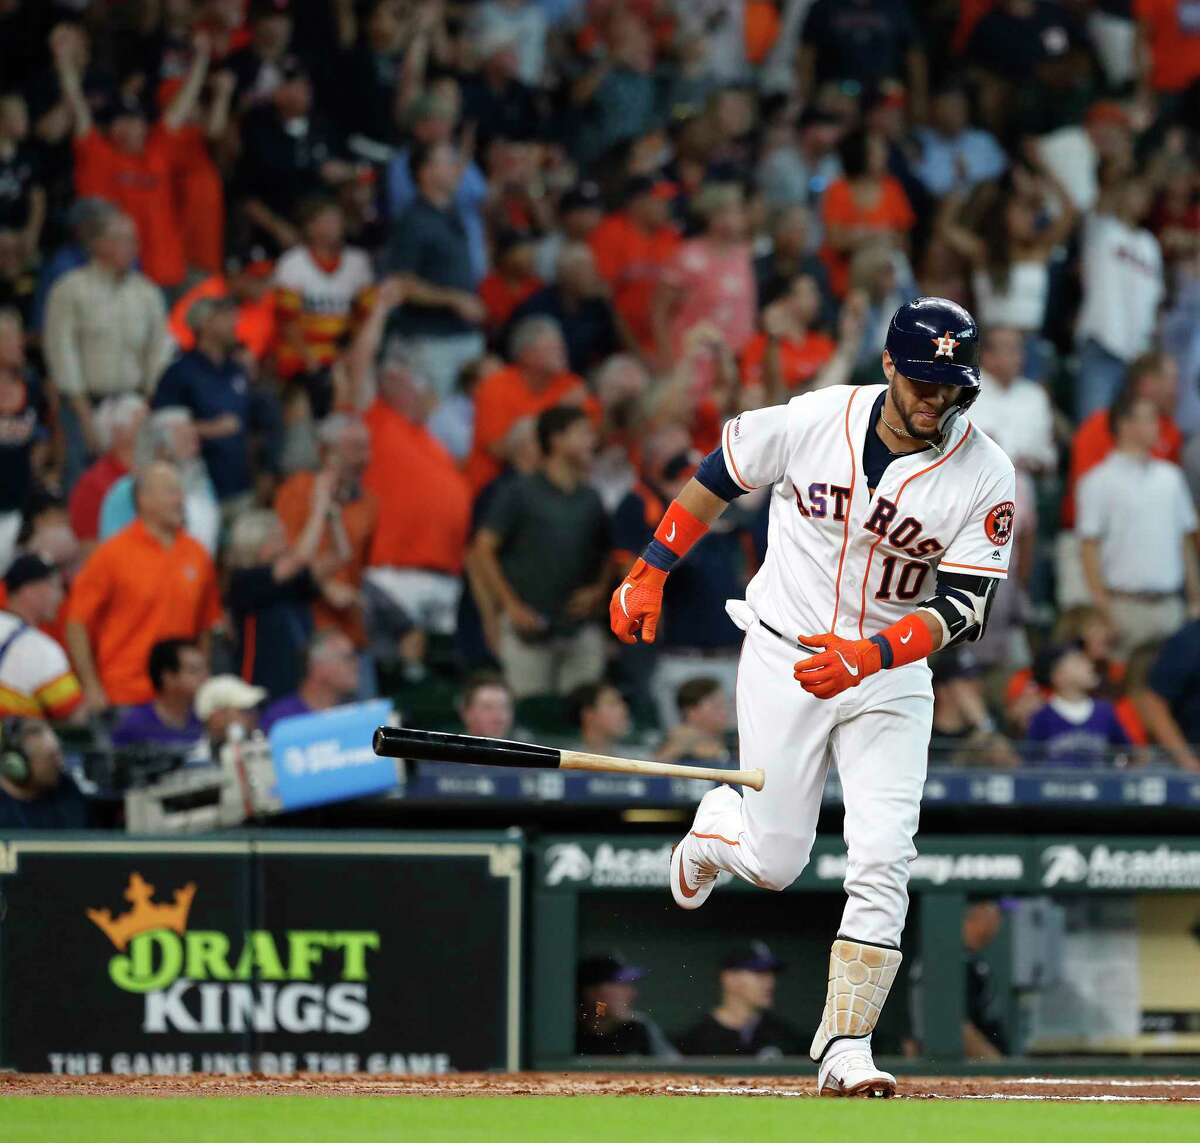 Houston Astros Yuli Gurriel (10) tosses his bat after hitting a three-run home run off of Colorado Rockies starting pitcher Peter Lambert during the first inning of an MLB baseball game at Minute Maid Park, Wednesday, August 7, 2019.